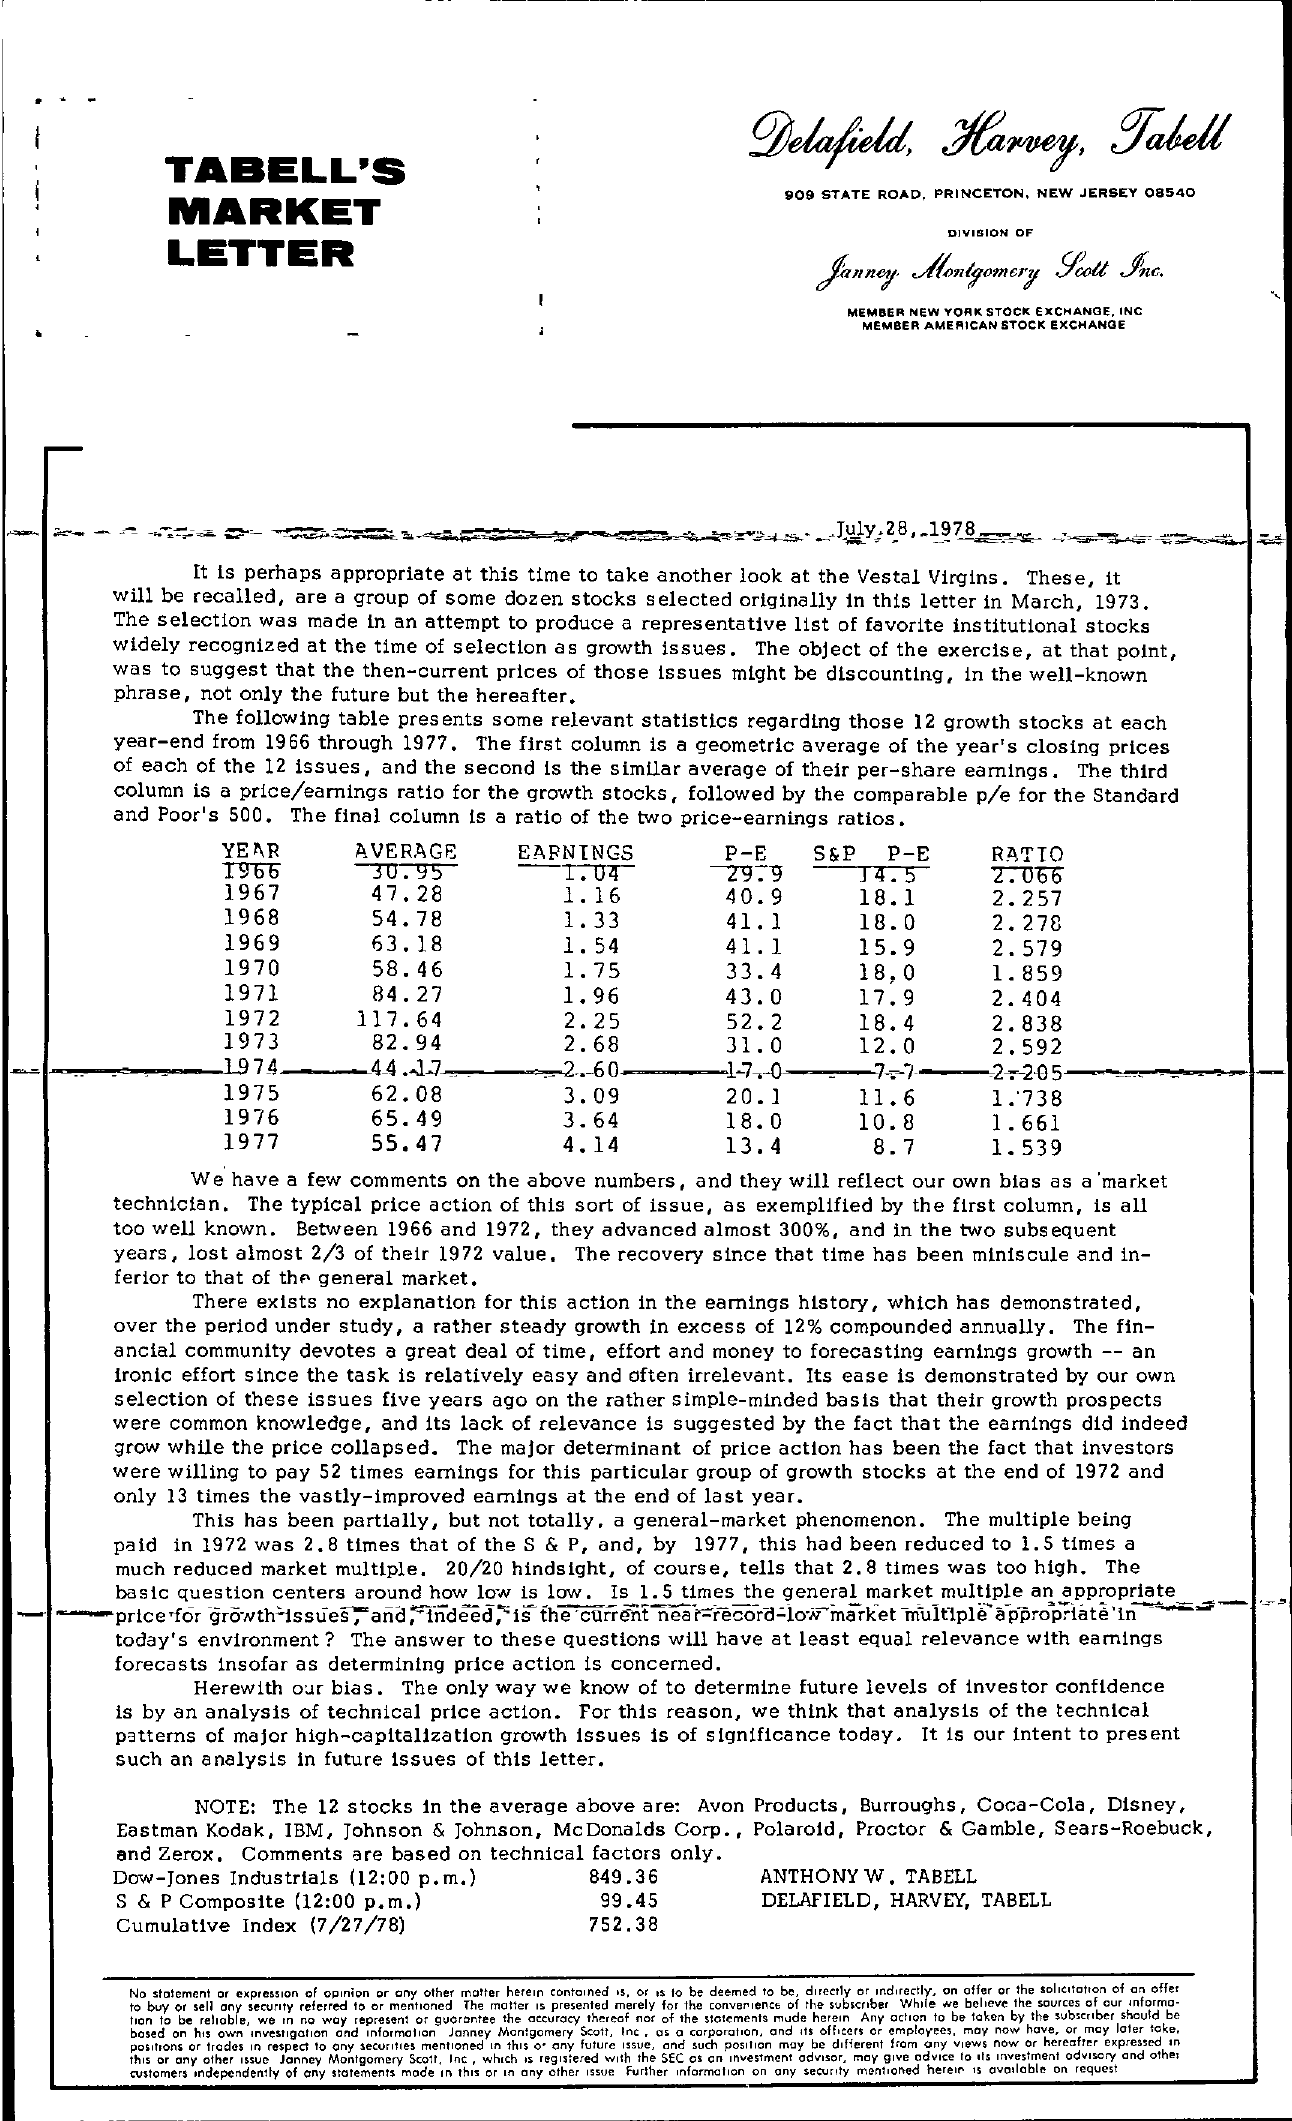 Tabell's Market Letter - July 28, 1978